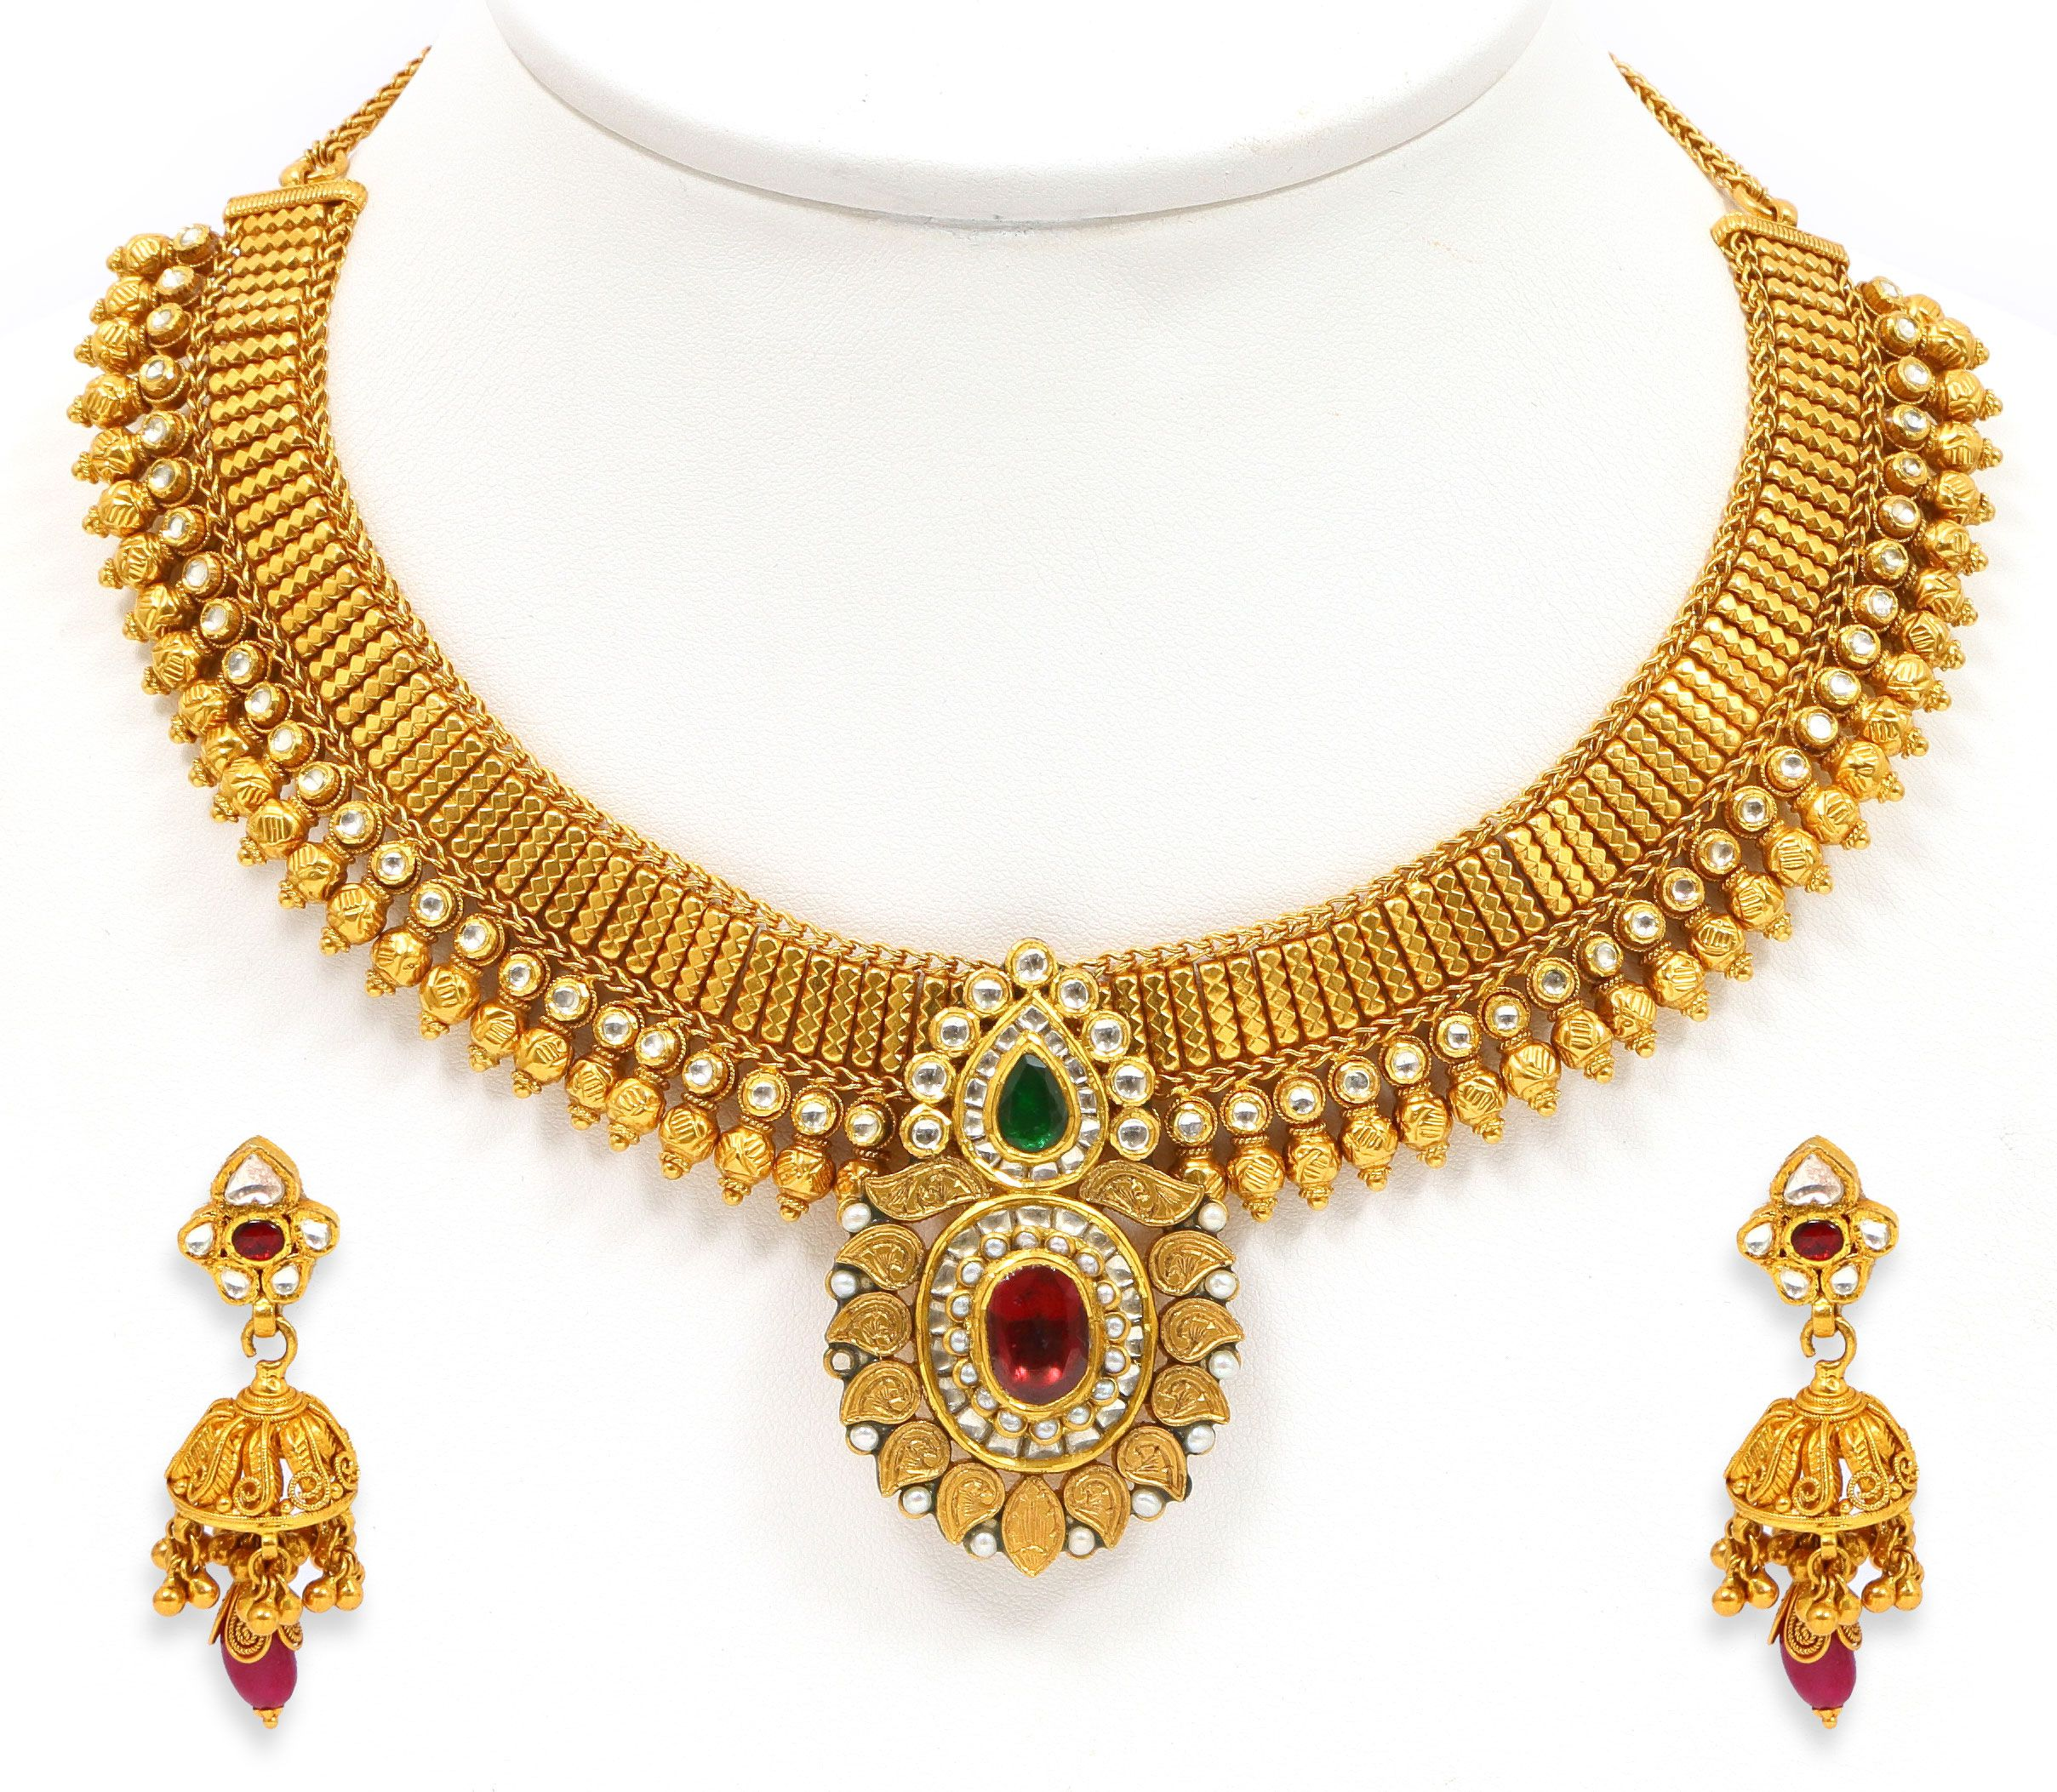 Gold Jewelry Necklace | Gold Jewellery | Pinterest | Gold ...